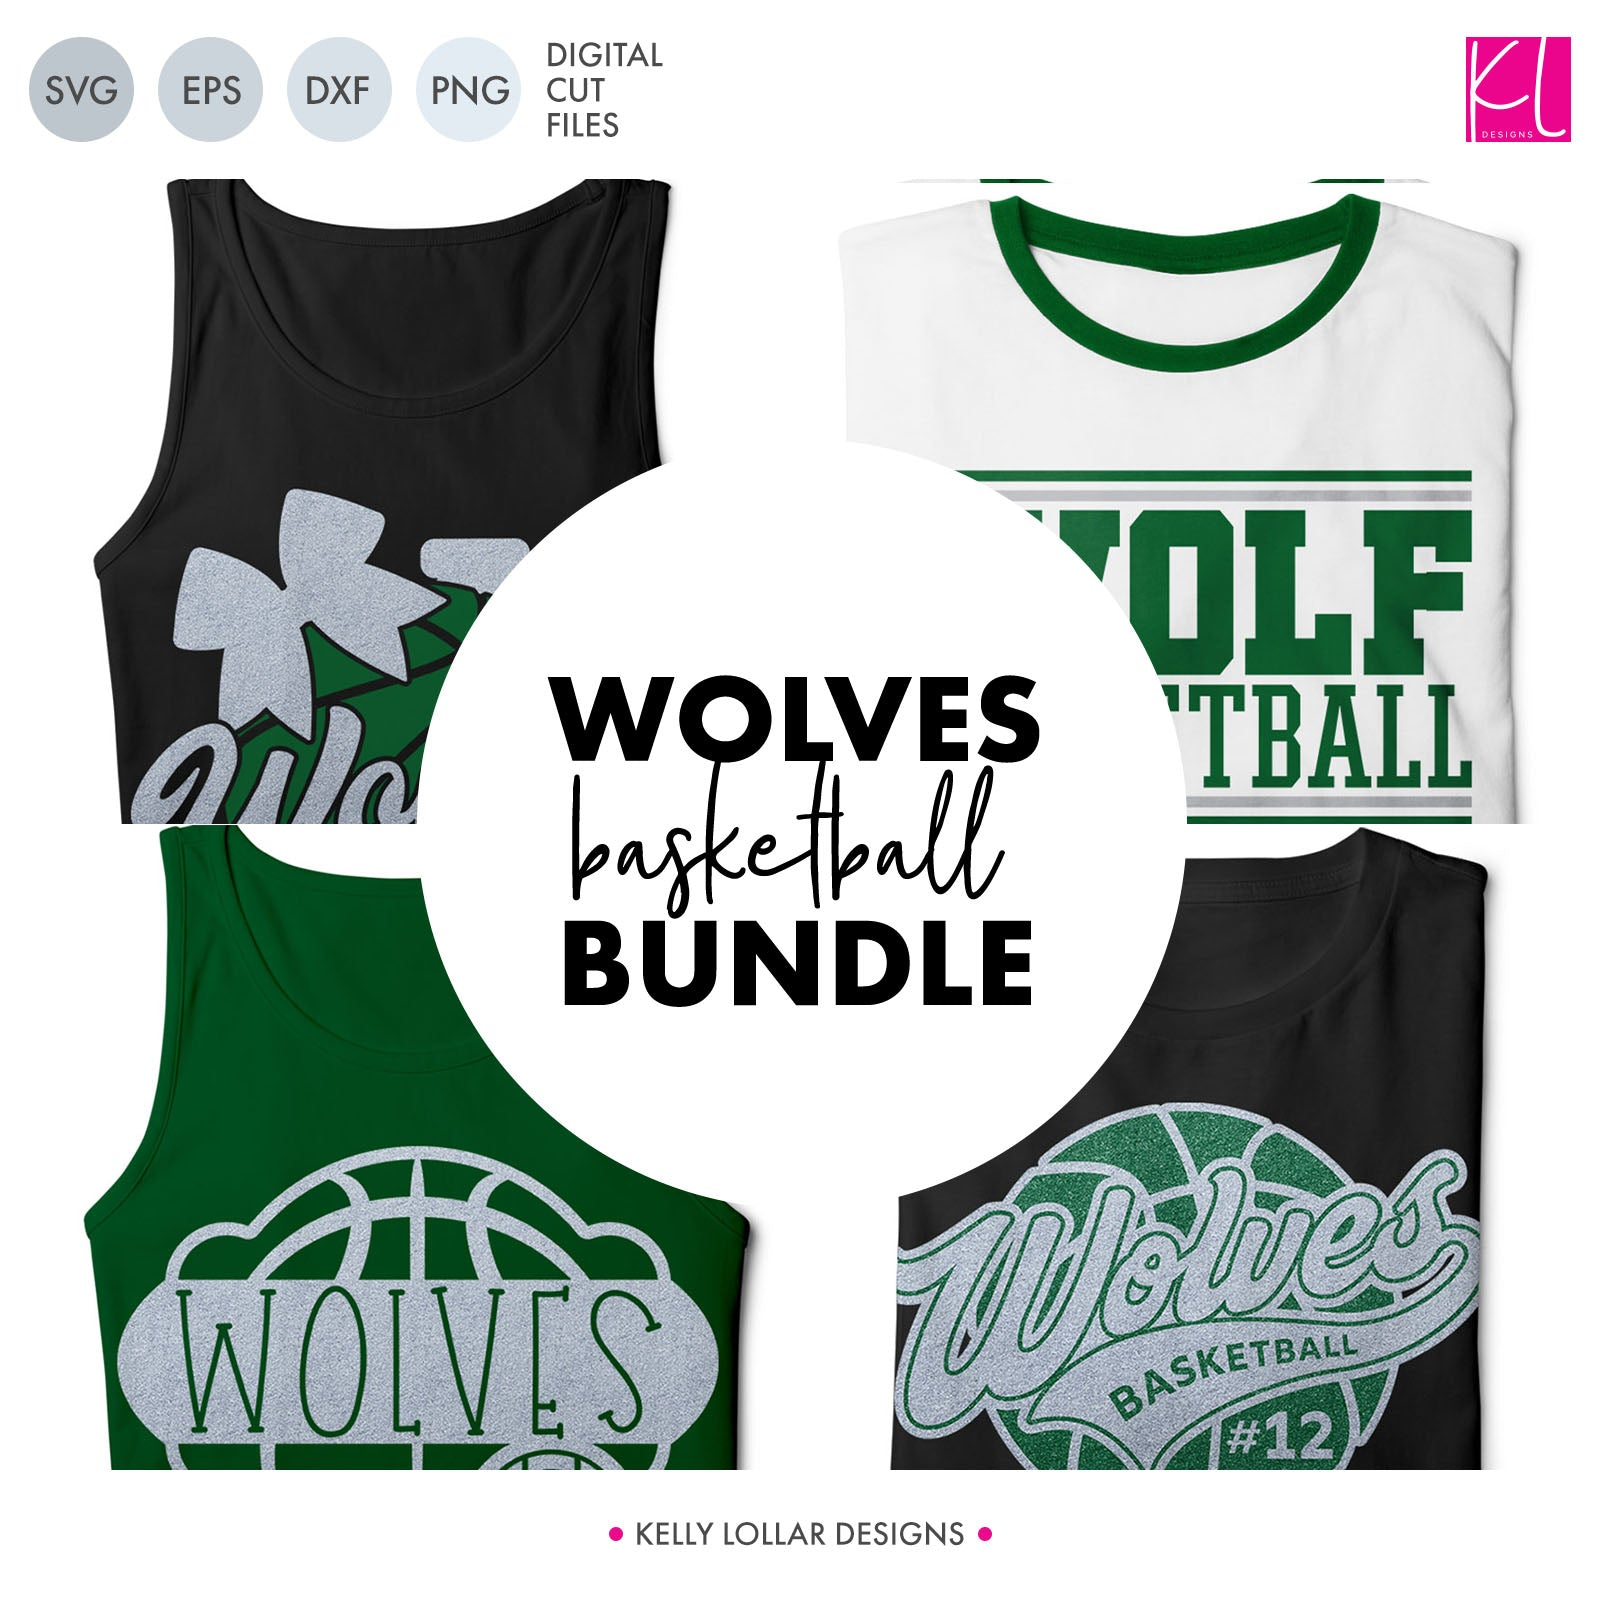 Wolves Basketball Bundle | SVG DXF EPS PNG Cut Files